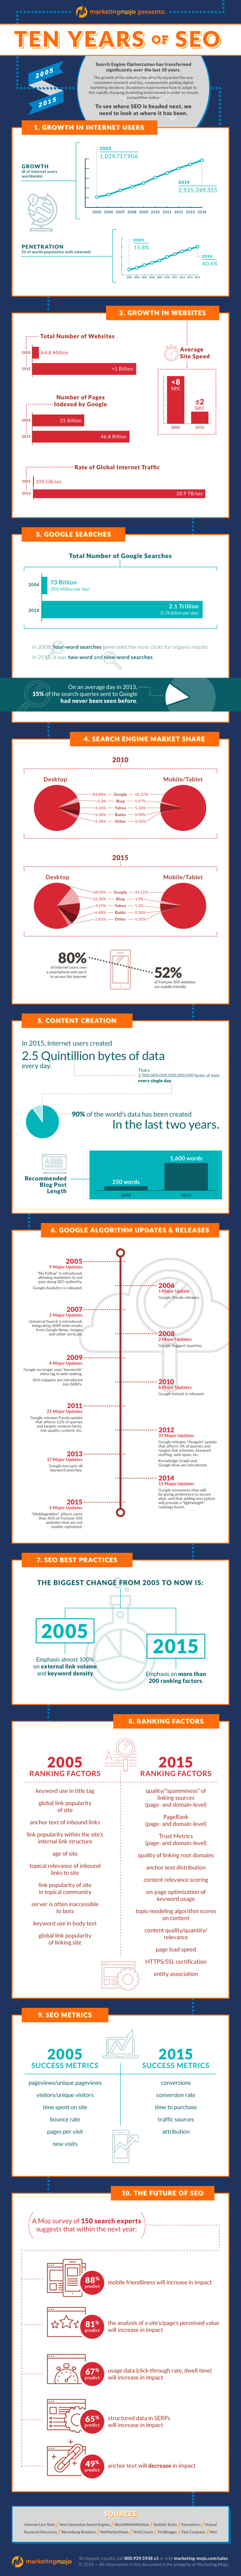 10 Big Ways Seo Has Changed Over The Past Decade Brandongaille Com Internet Marketing Infographics Infographic Marketing Infographic